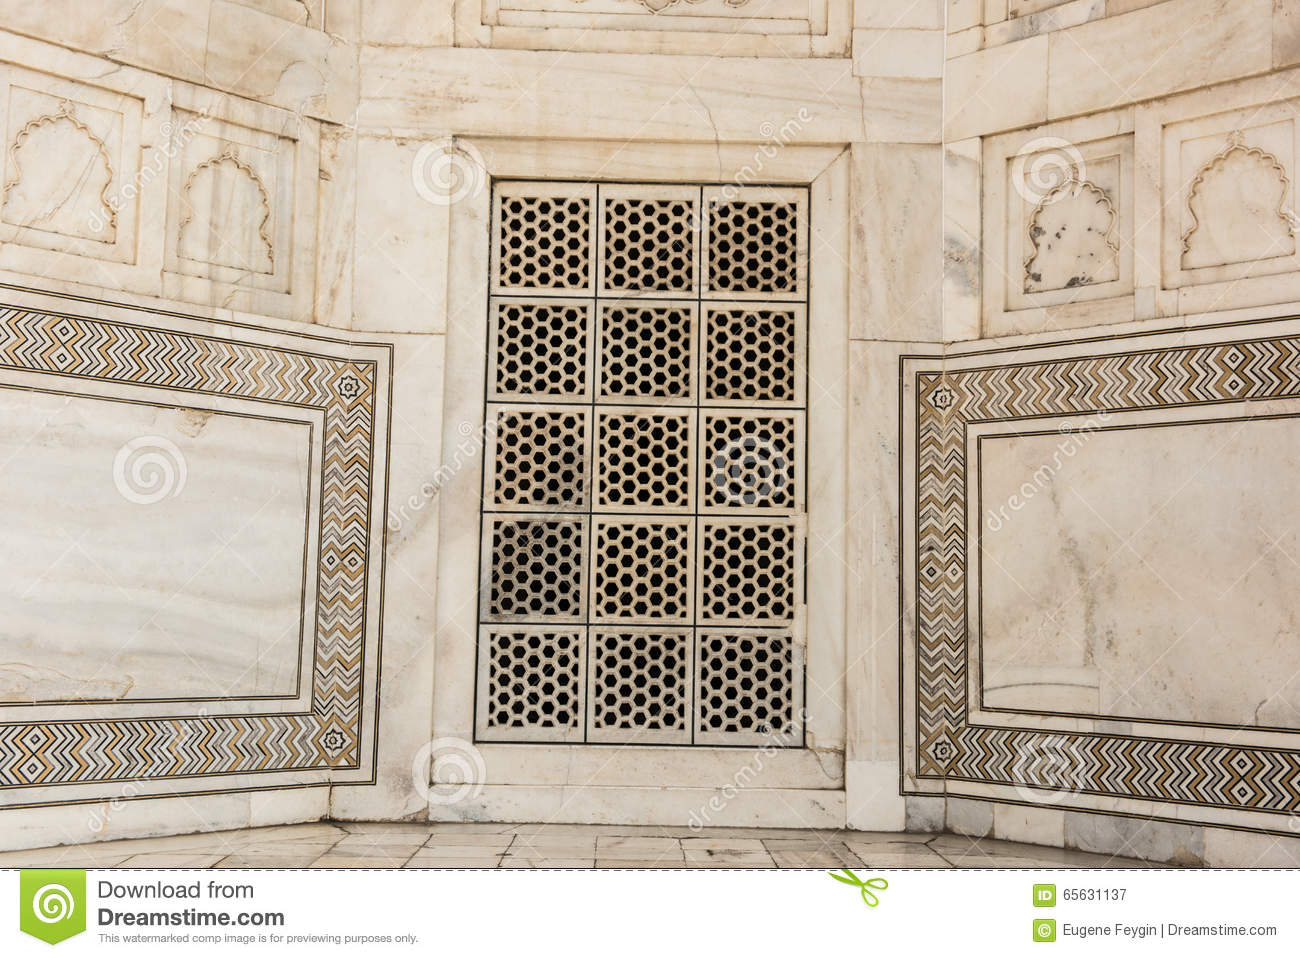 Marble Designs marble designs in taj mahal stock photo - image: 72473880